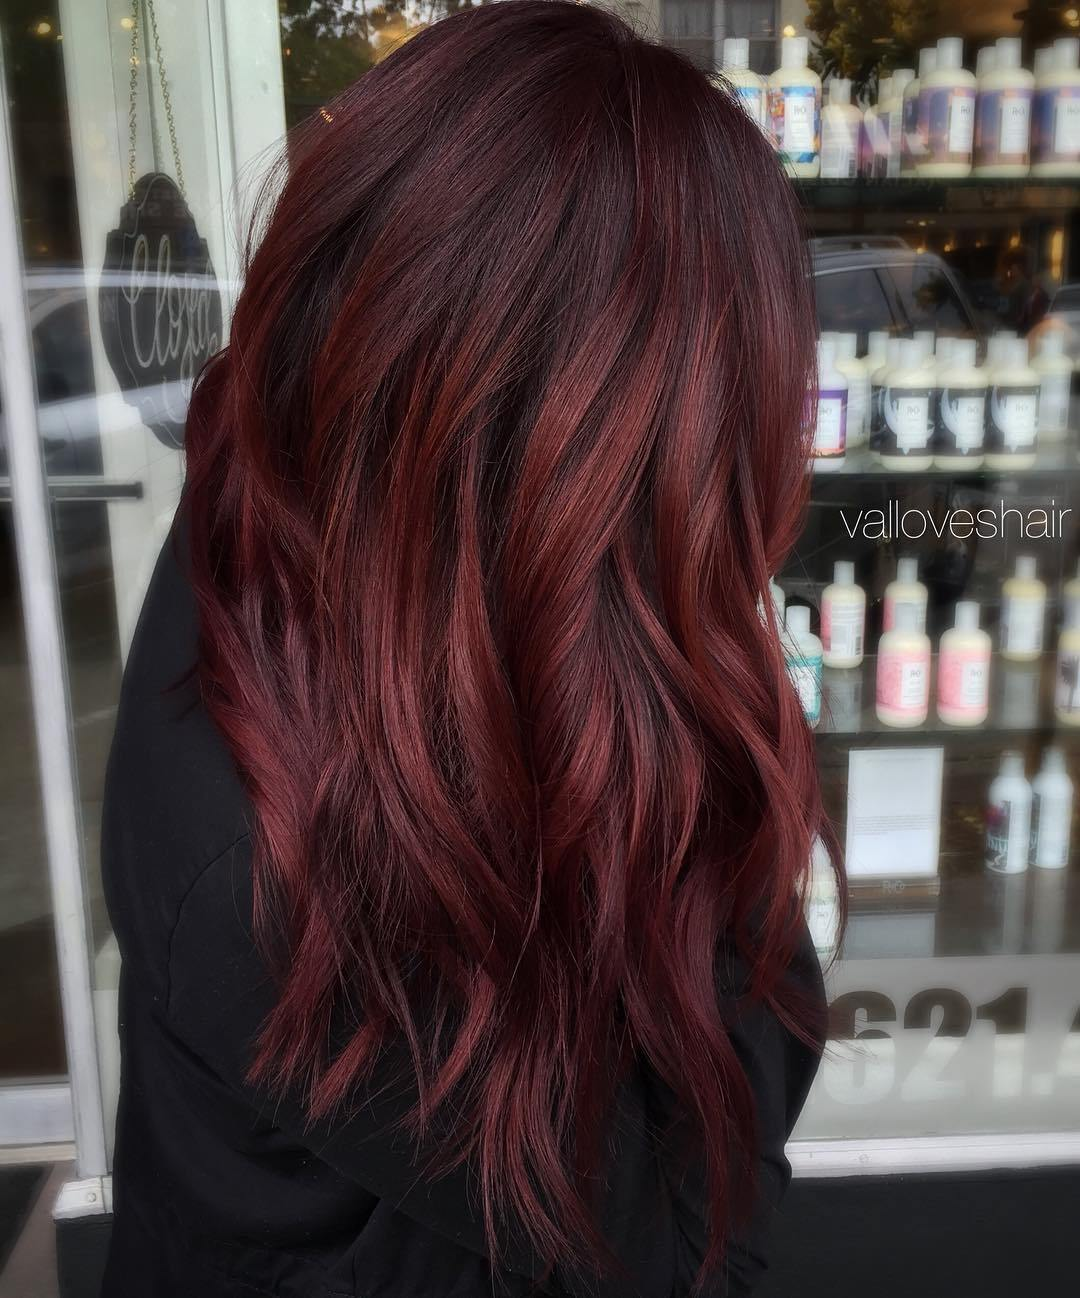 Color Your Hair At Home Naturally